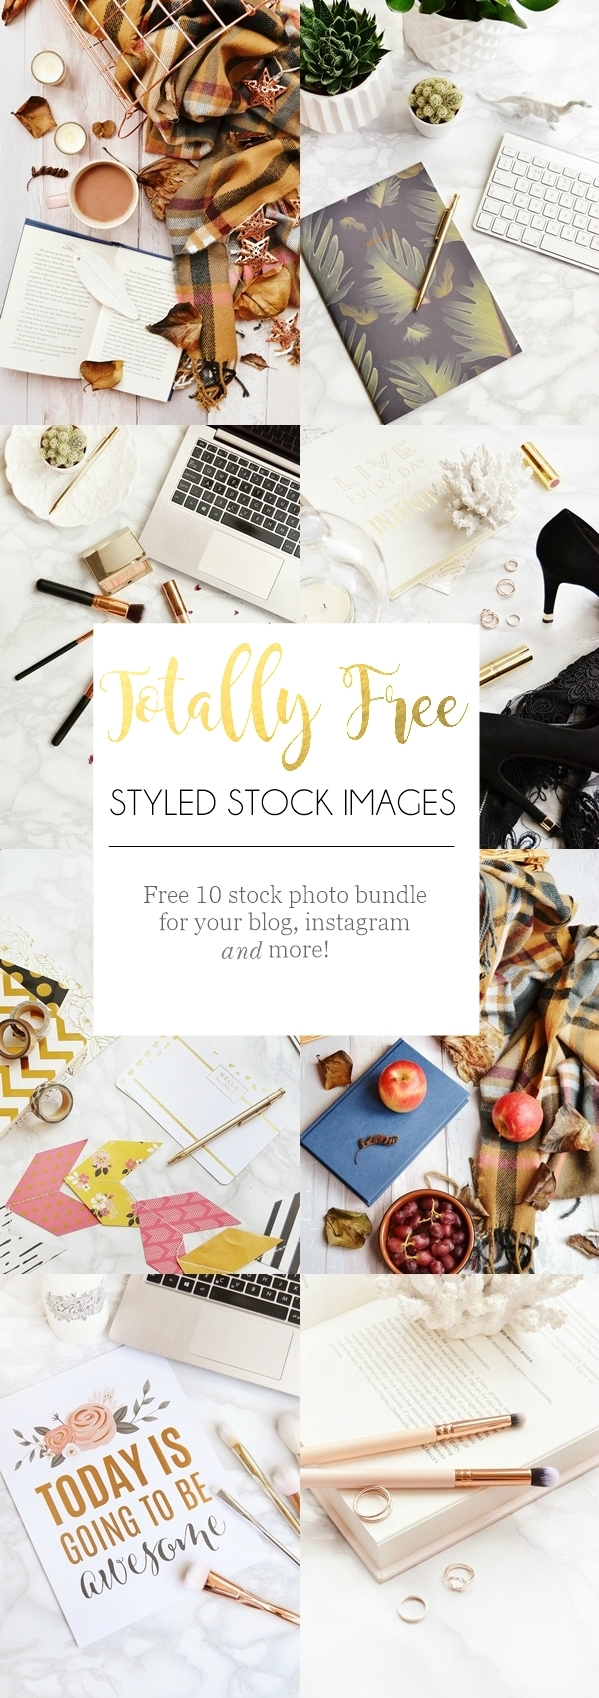 Free-styled-stock-images